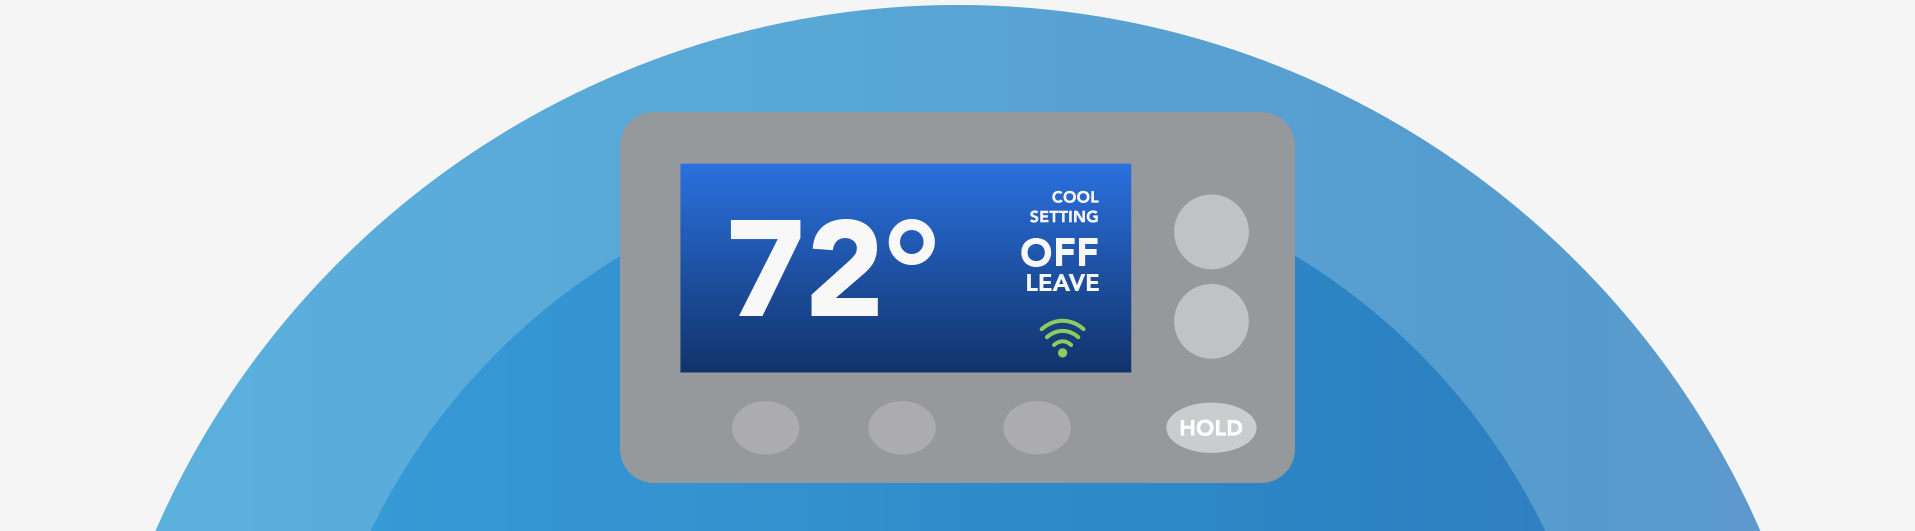 Thermostats Guide